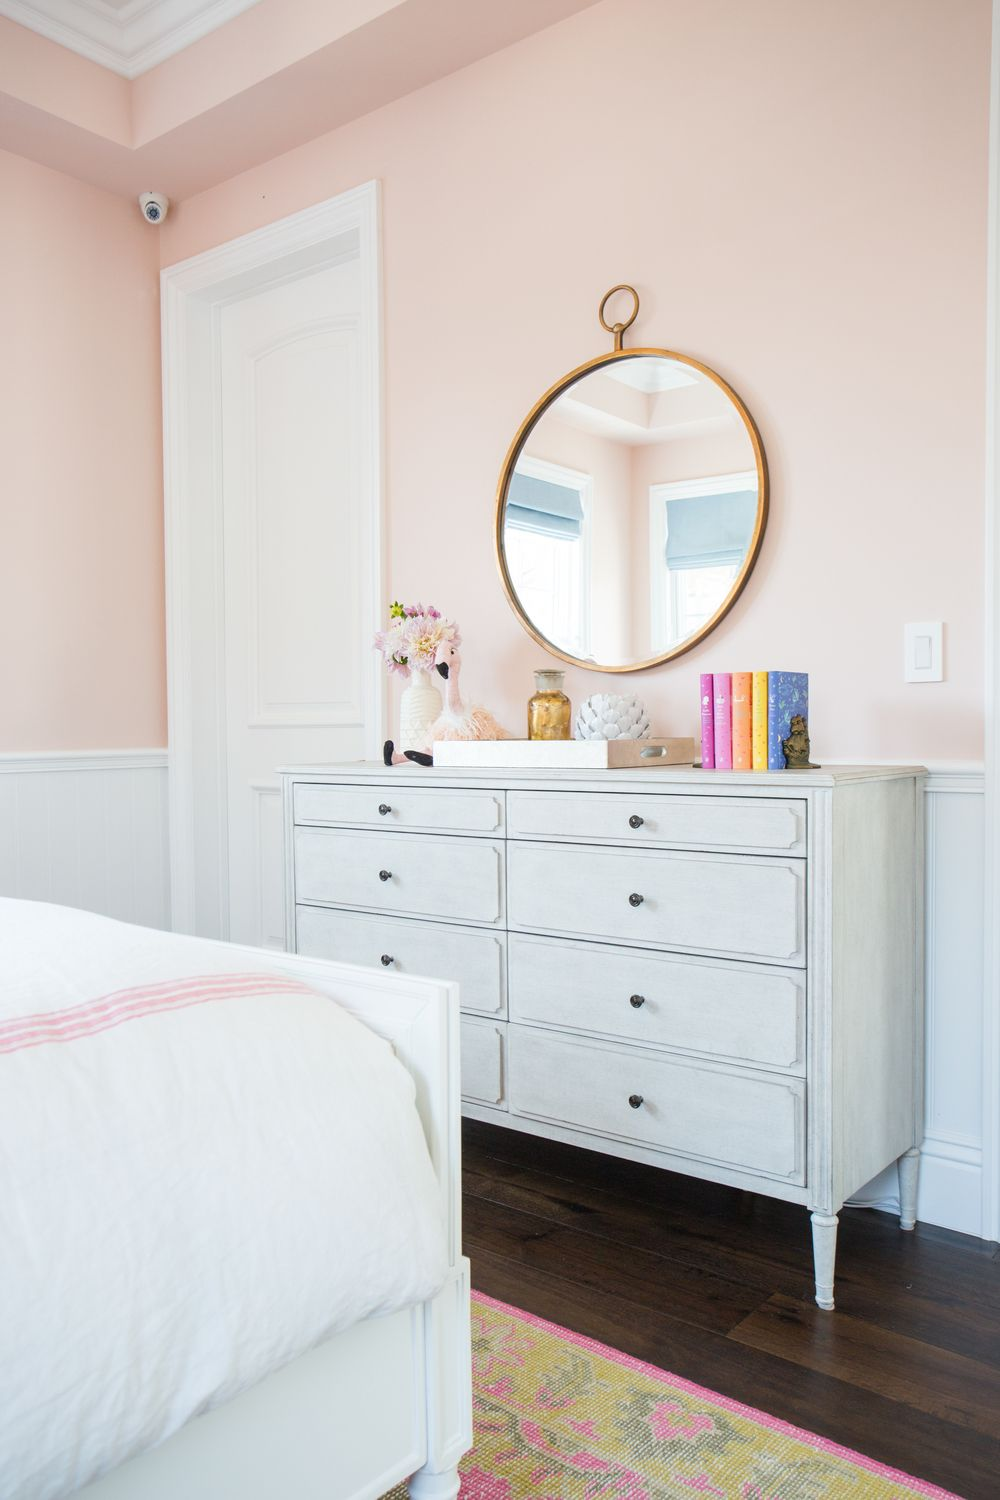 Rooms For Girl Pacific Palisades Project Little Girl's & Guest Rooms  Studio